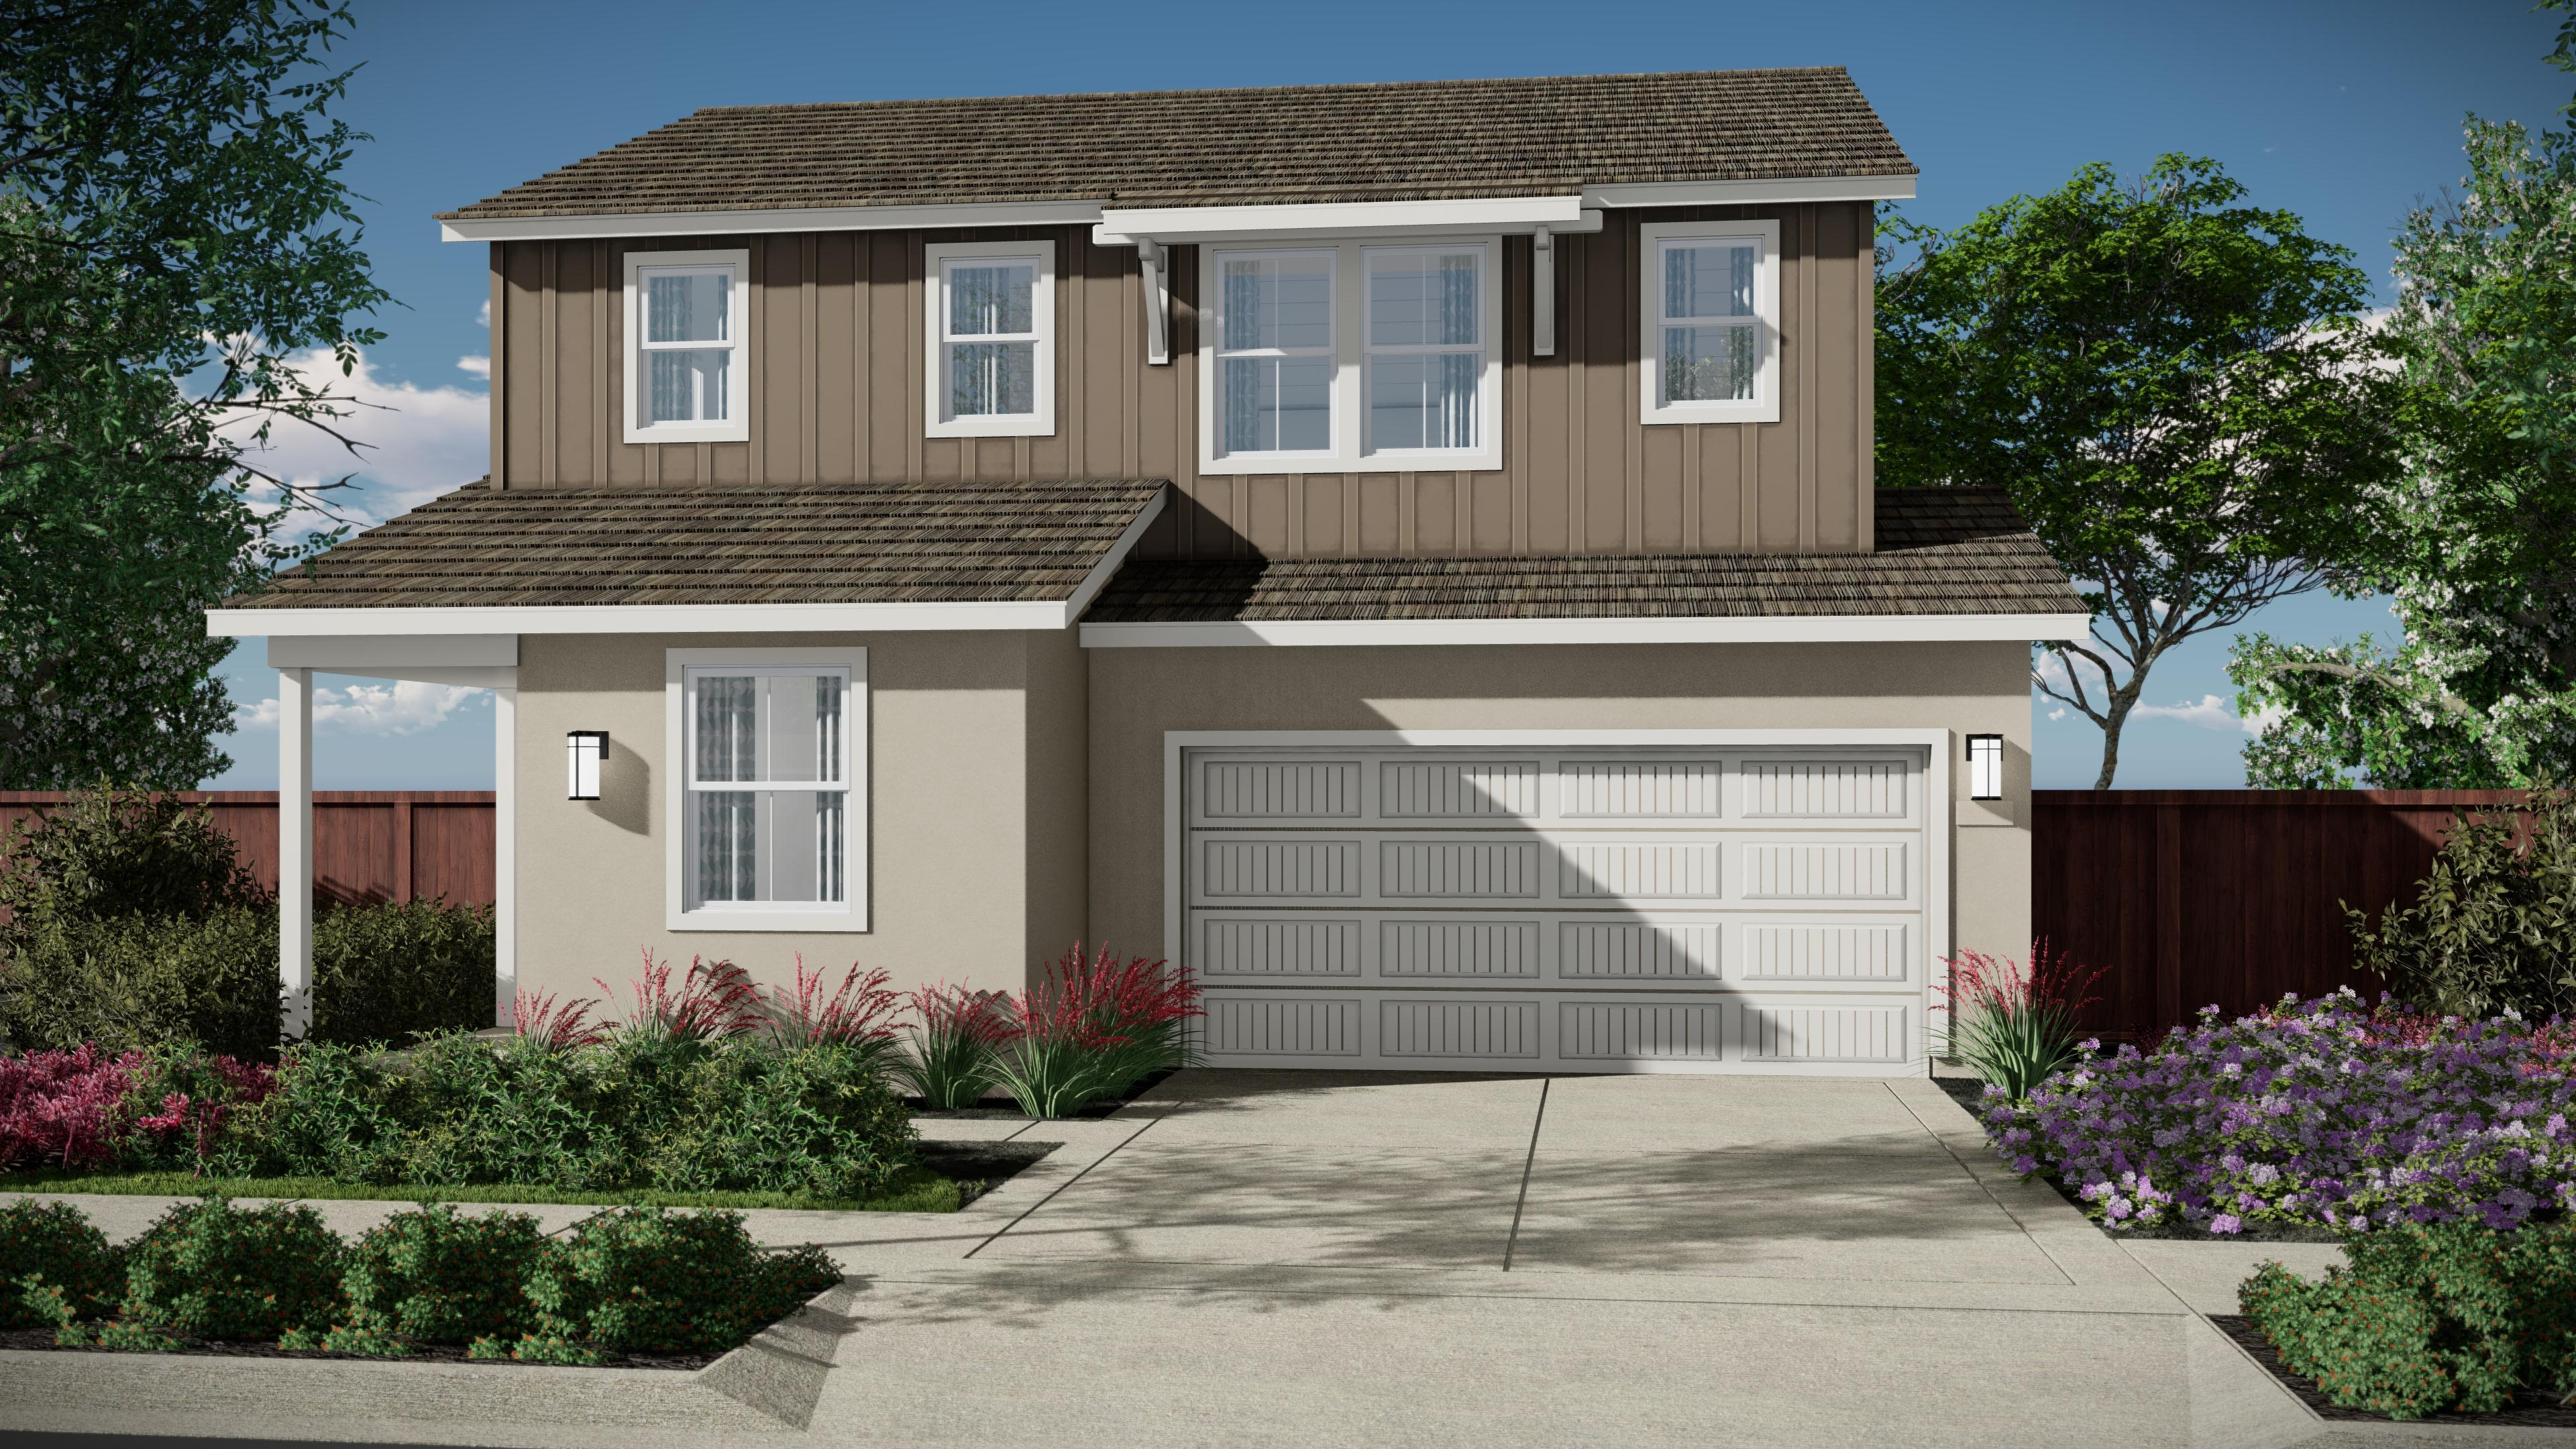 Exterior featured in the Carousel Residence 1 By Kiper Homes in Santa Cruz, CA